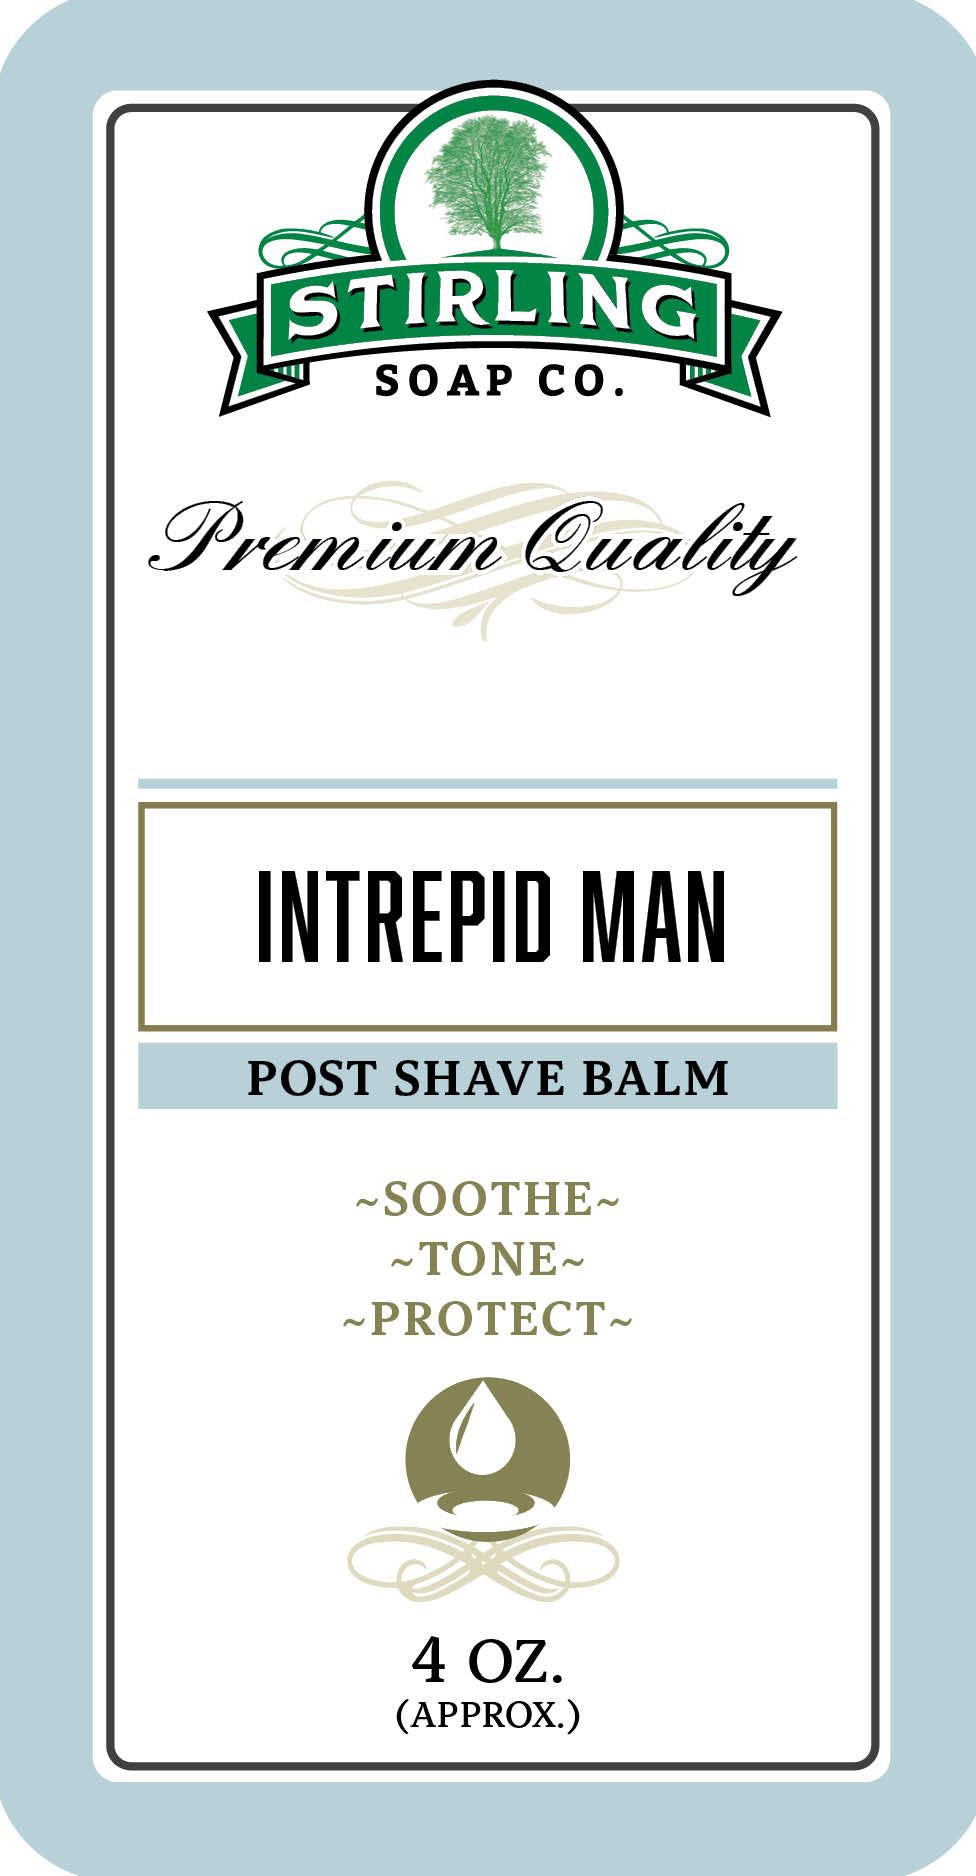 Intrepid Man - Post-Shave Balm